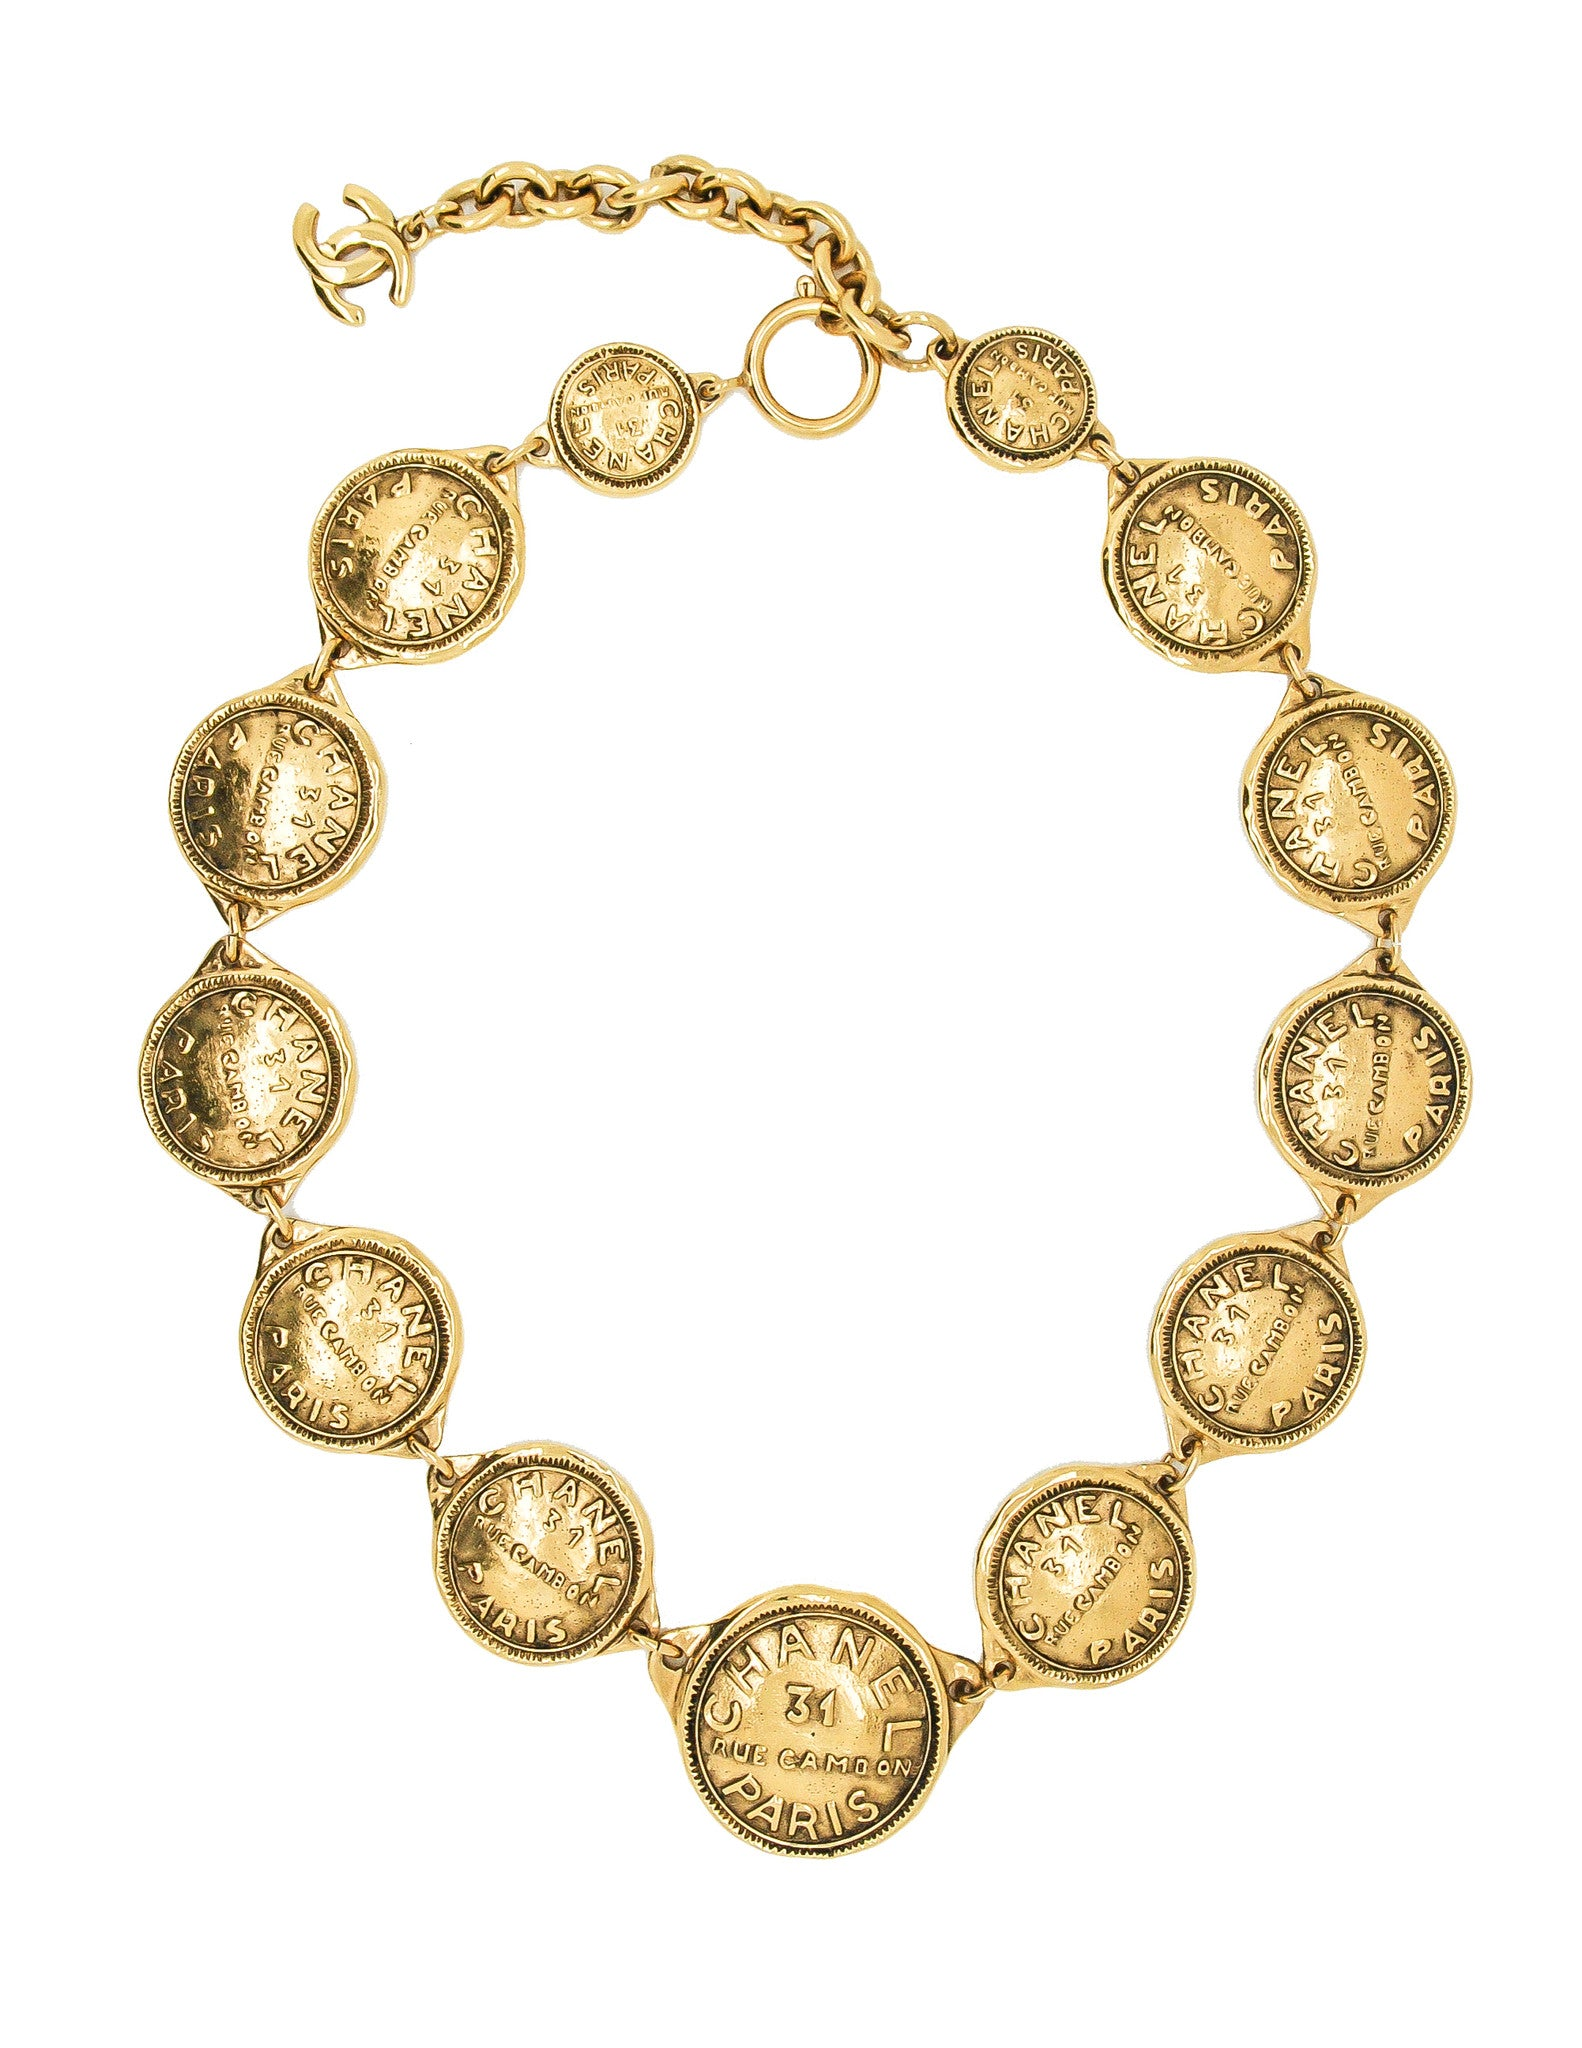 Chanel Vintage Gold 31 Rue Cambon Coin Medallion Necklace - Amarcord Vintage Fashion  - 1